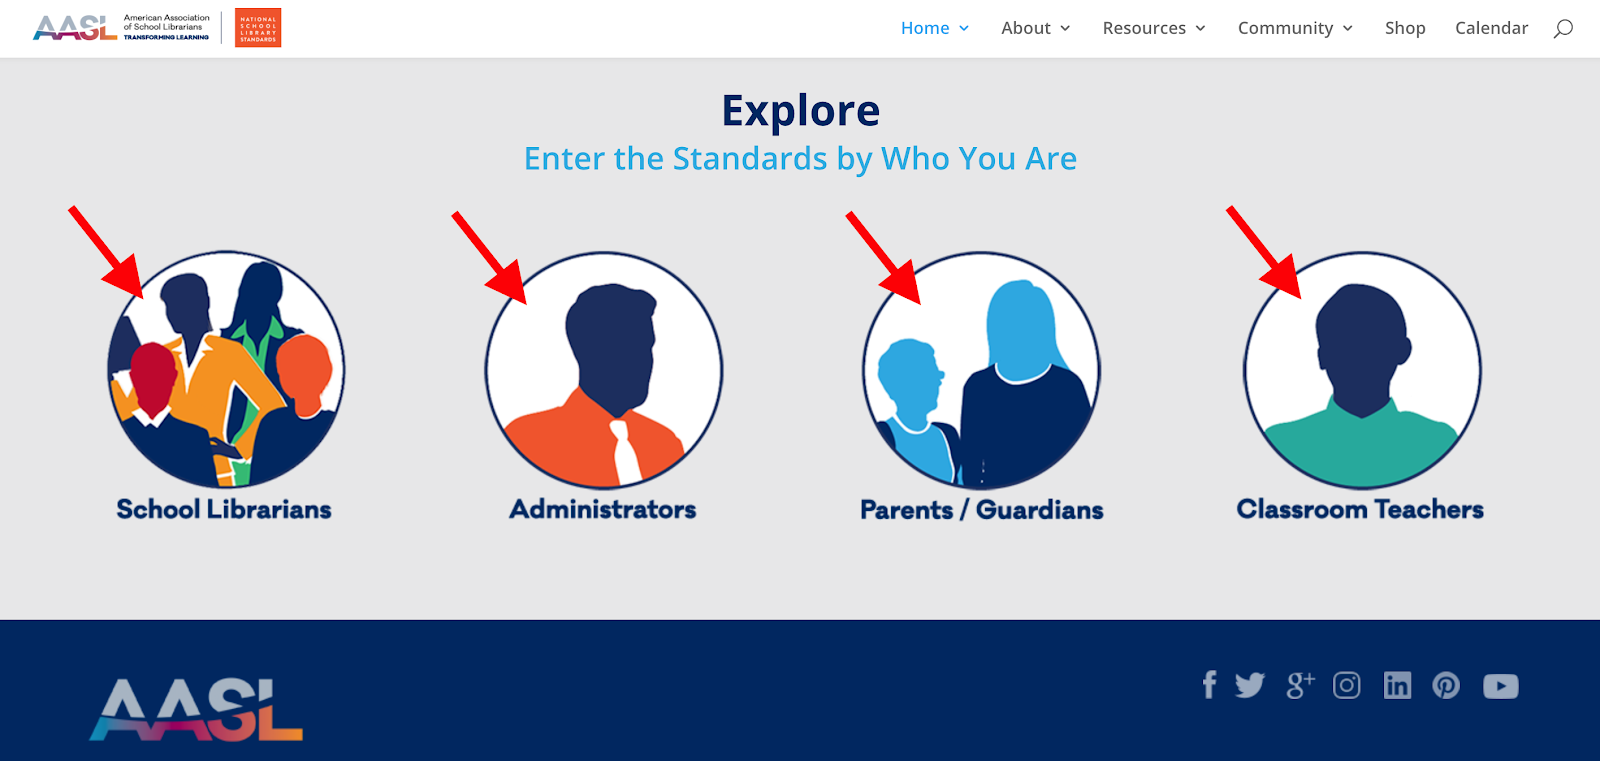 AASL Explore: Enter the standards by who you are.